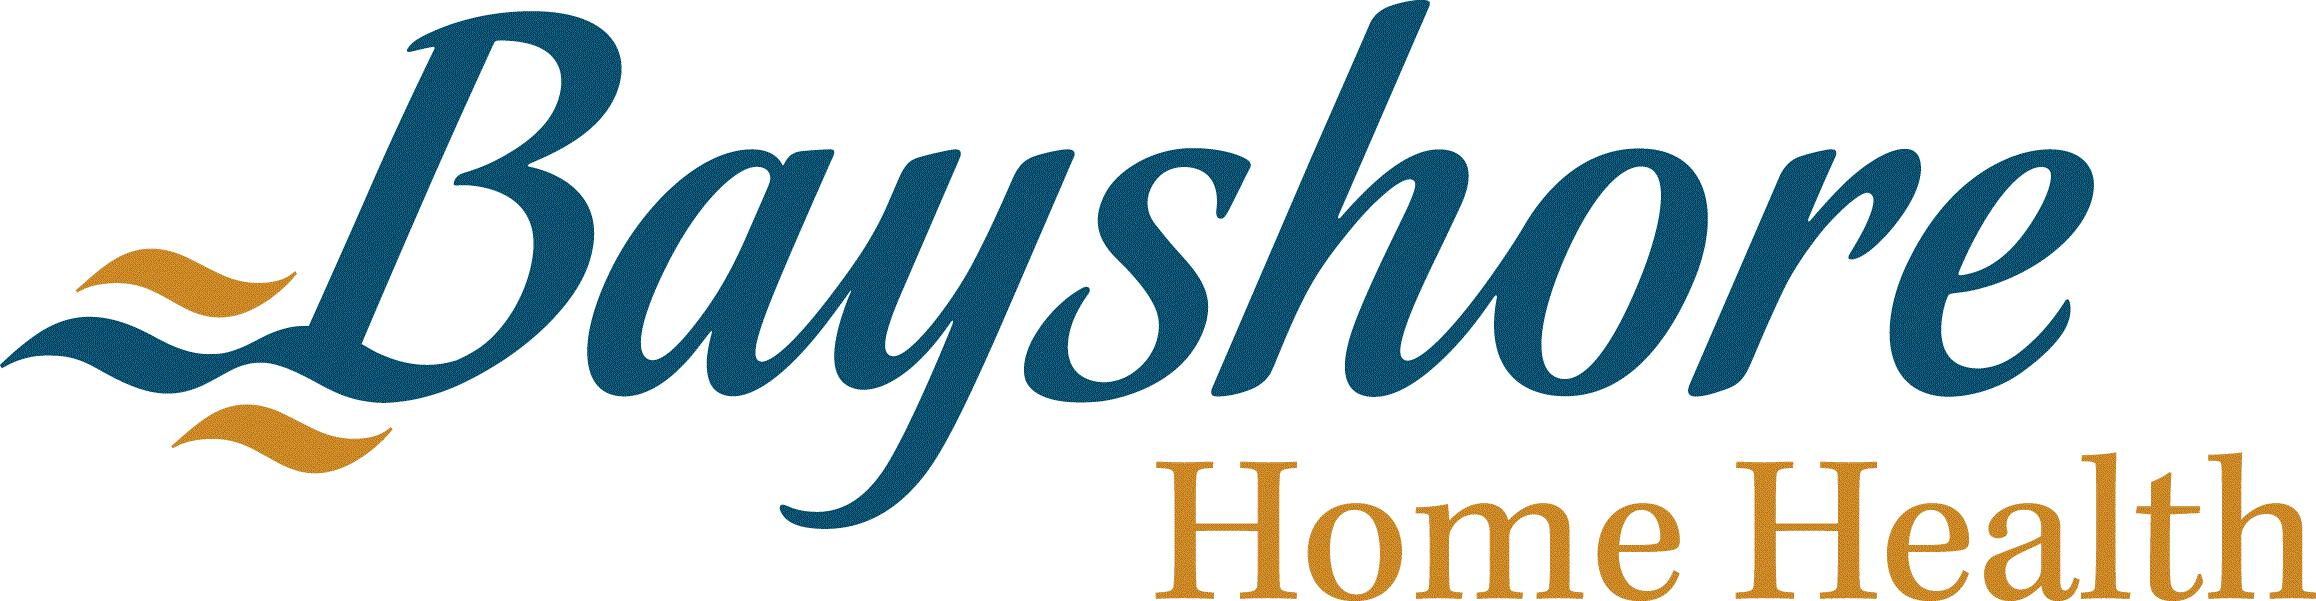 Bayshore Home Health logo